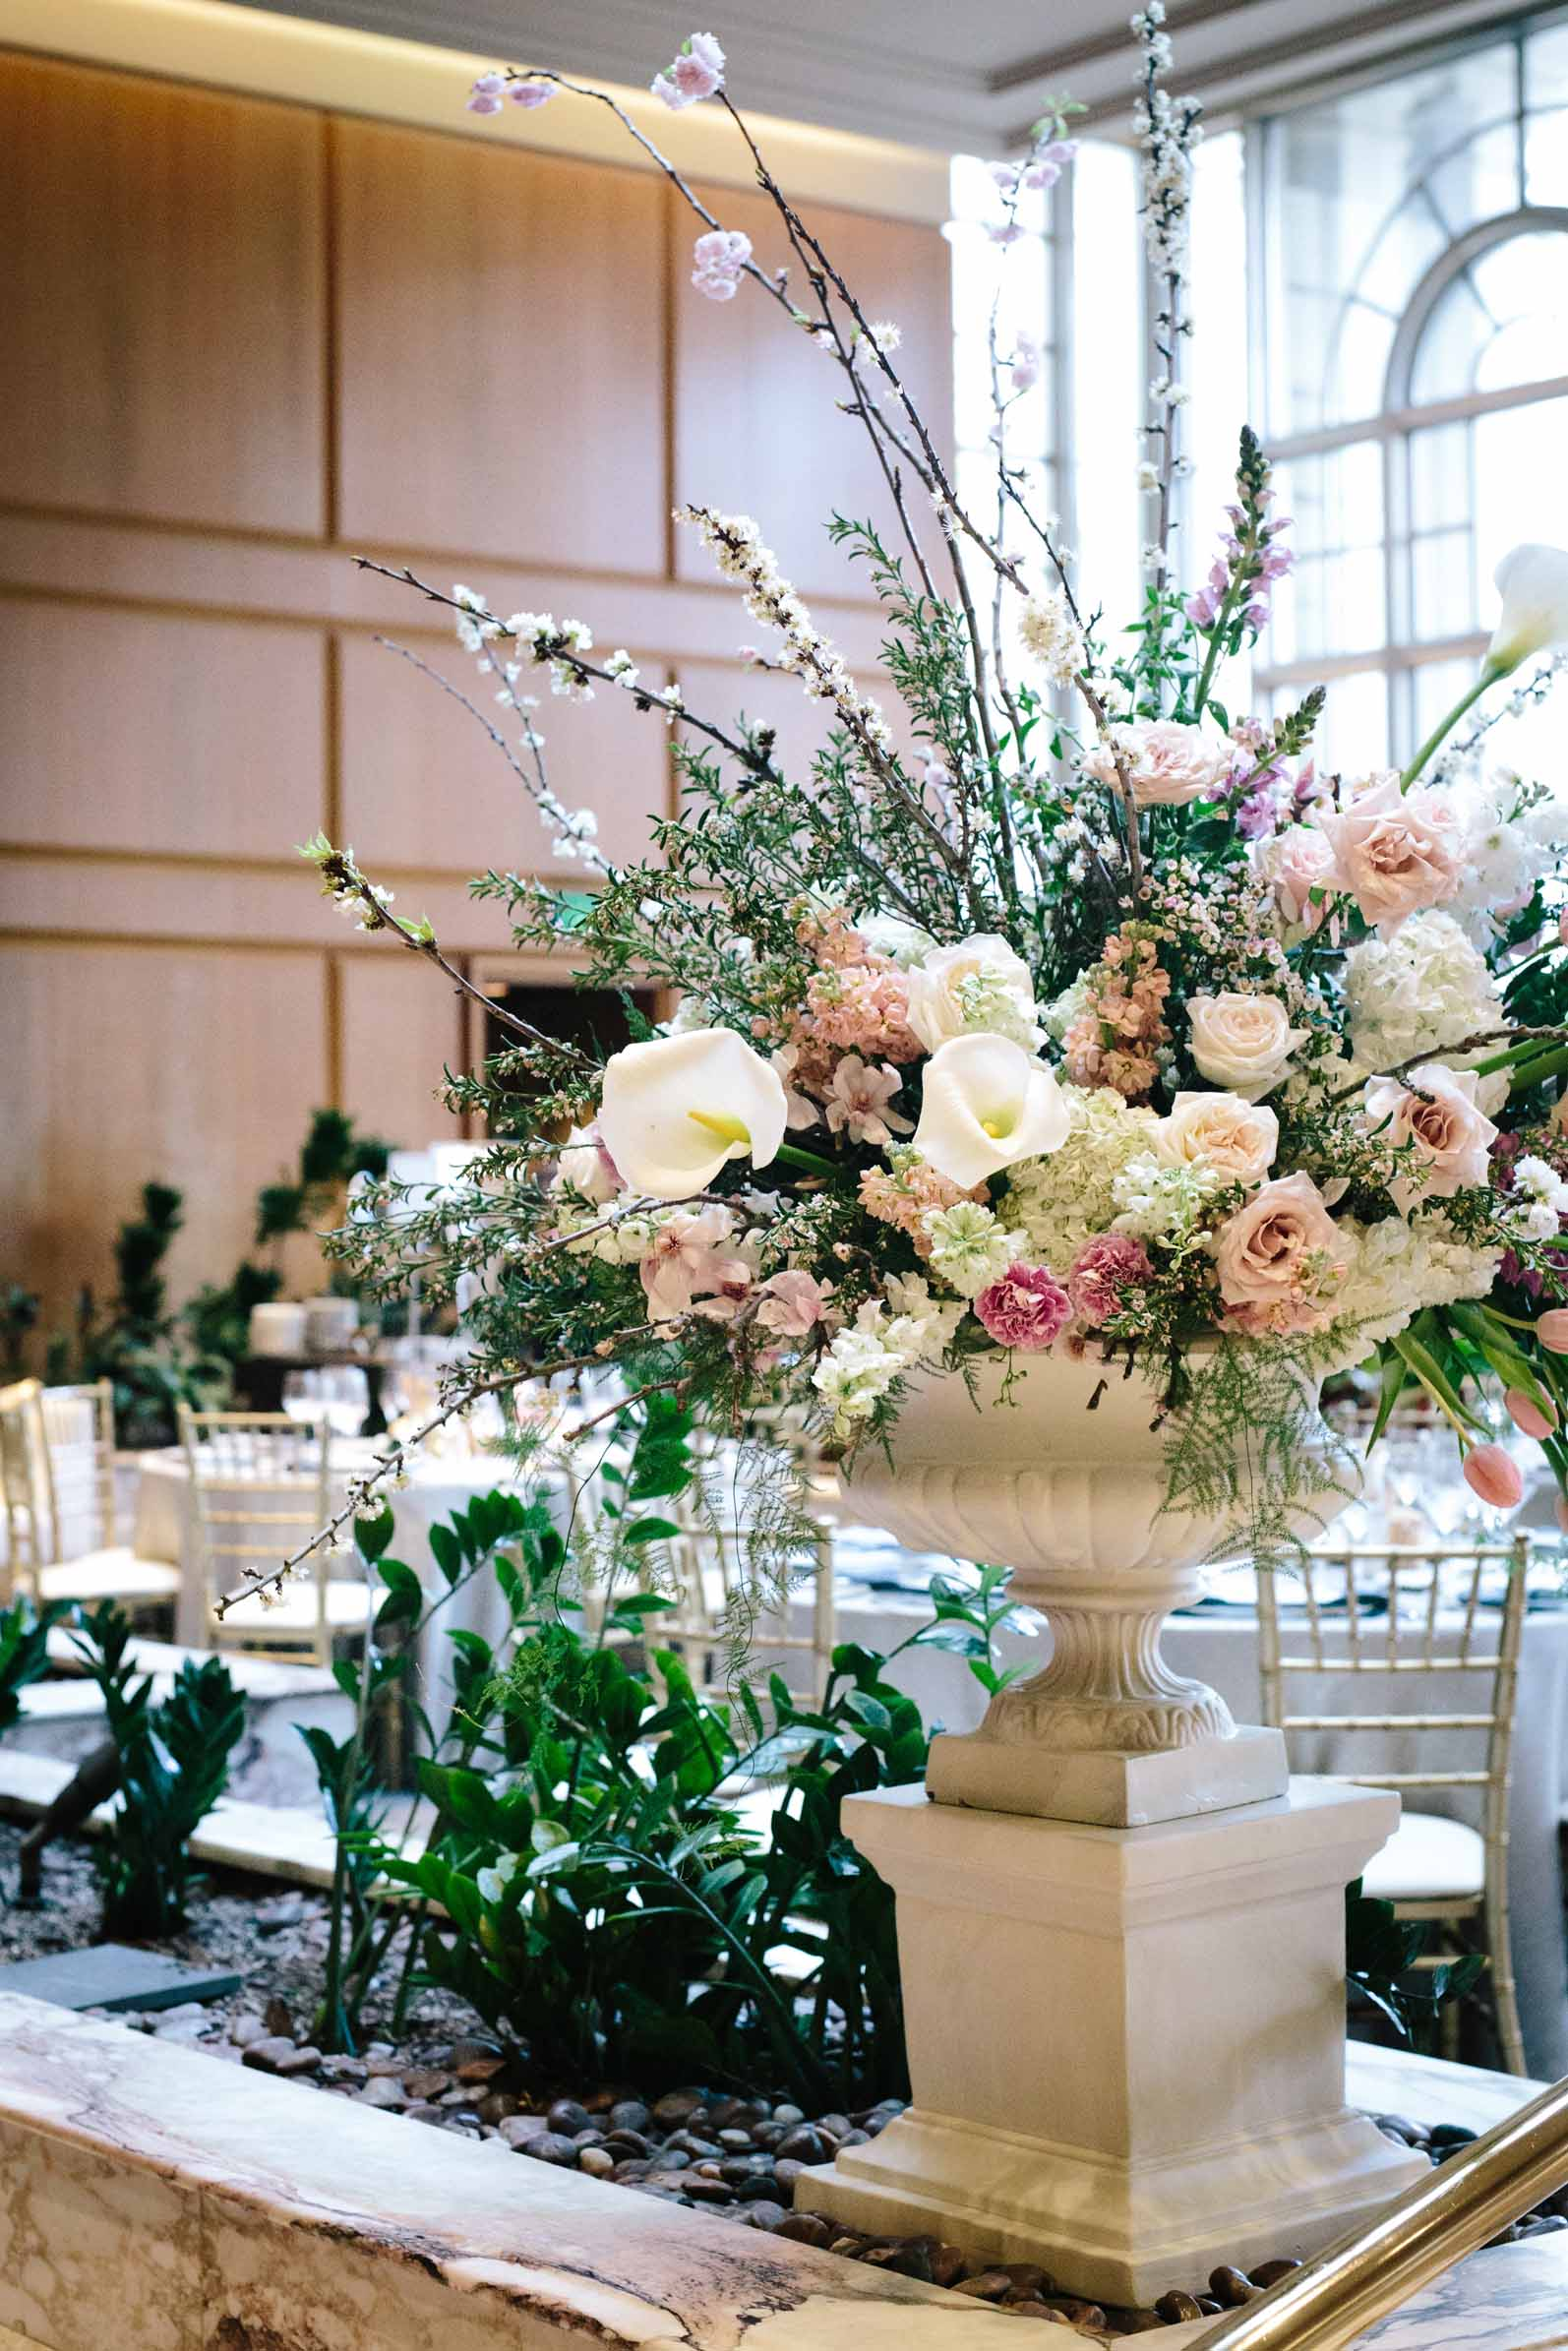 Large white urn filled with spring garden flowers in pink and white, sitting in hotel ballroom